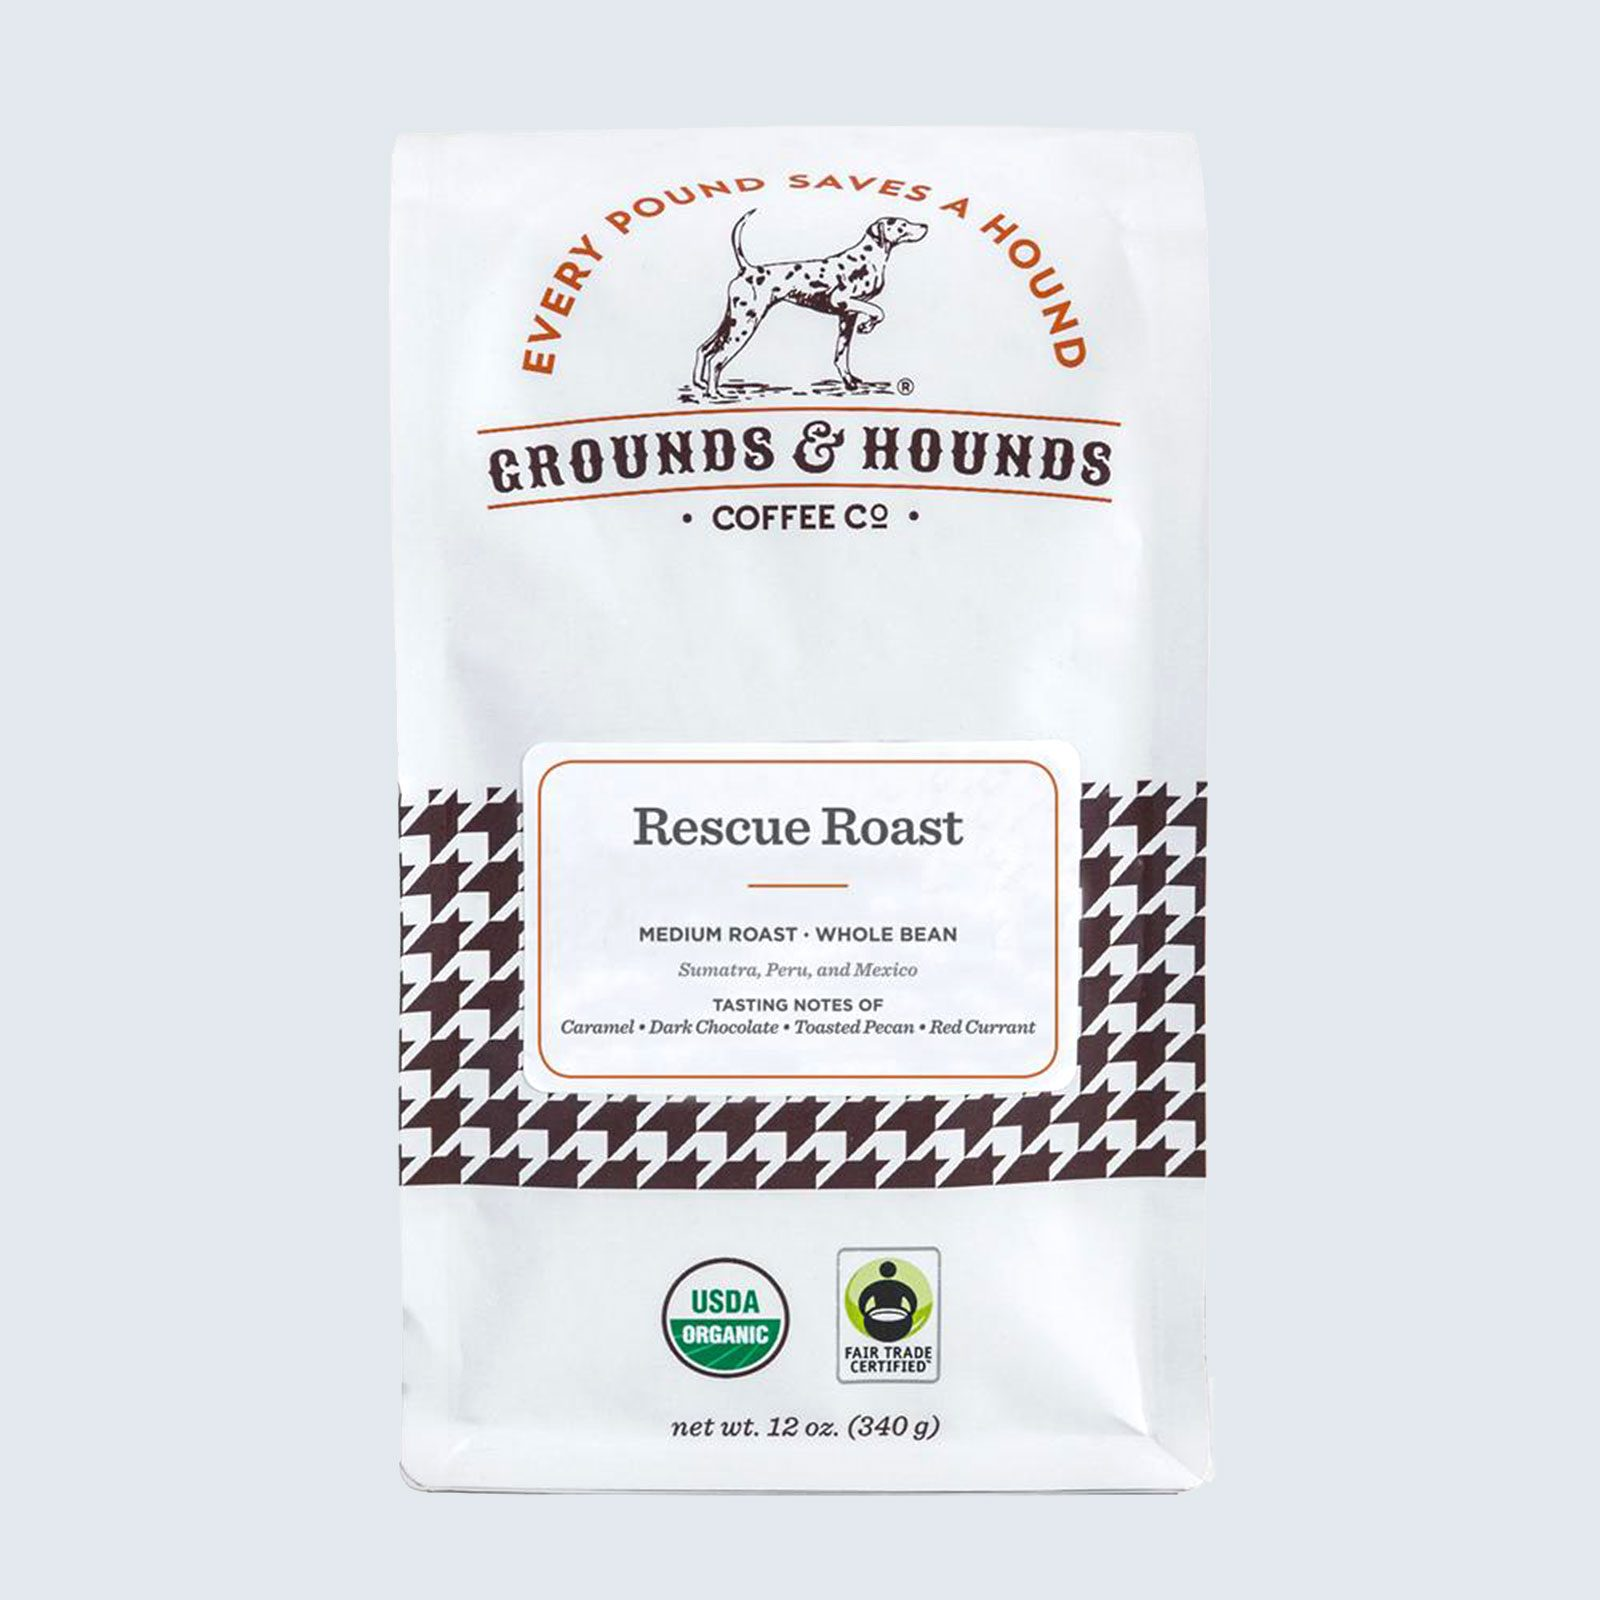 Grounds & Hounds Rescue Roast